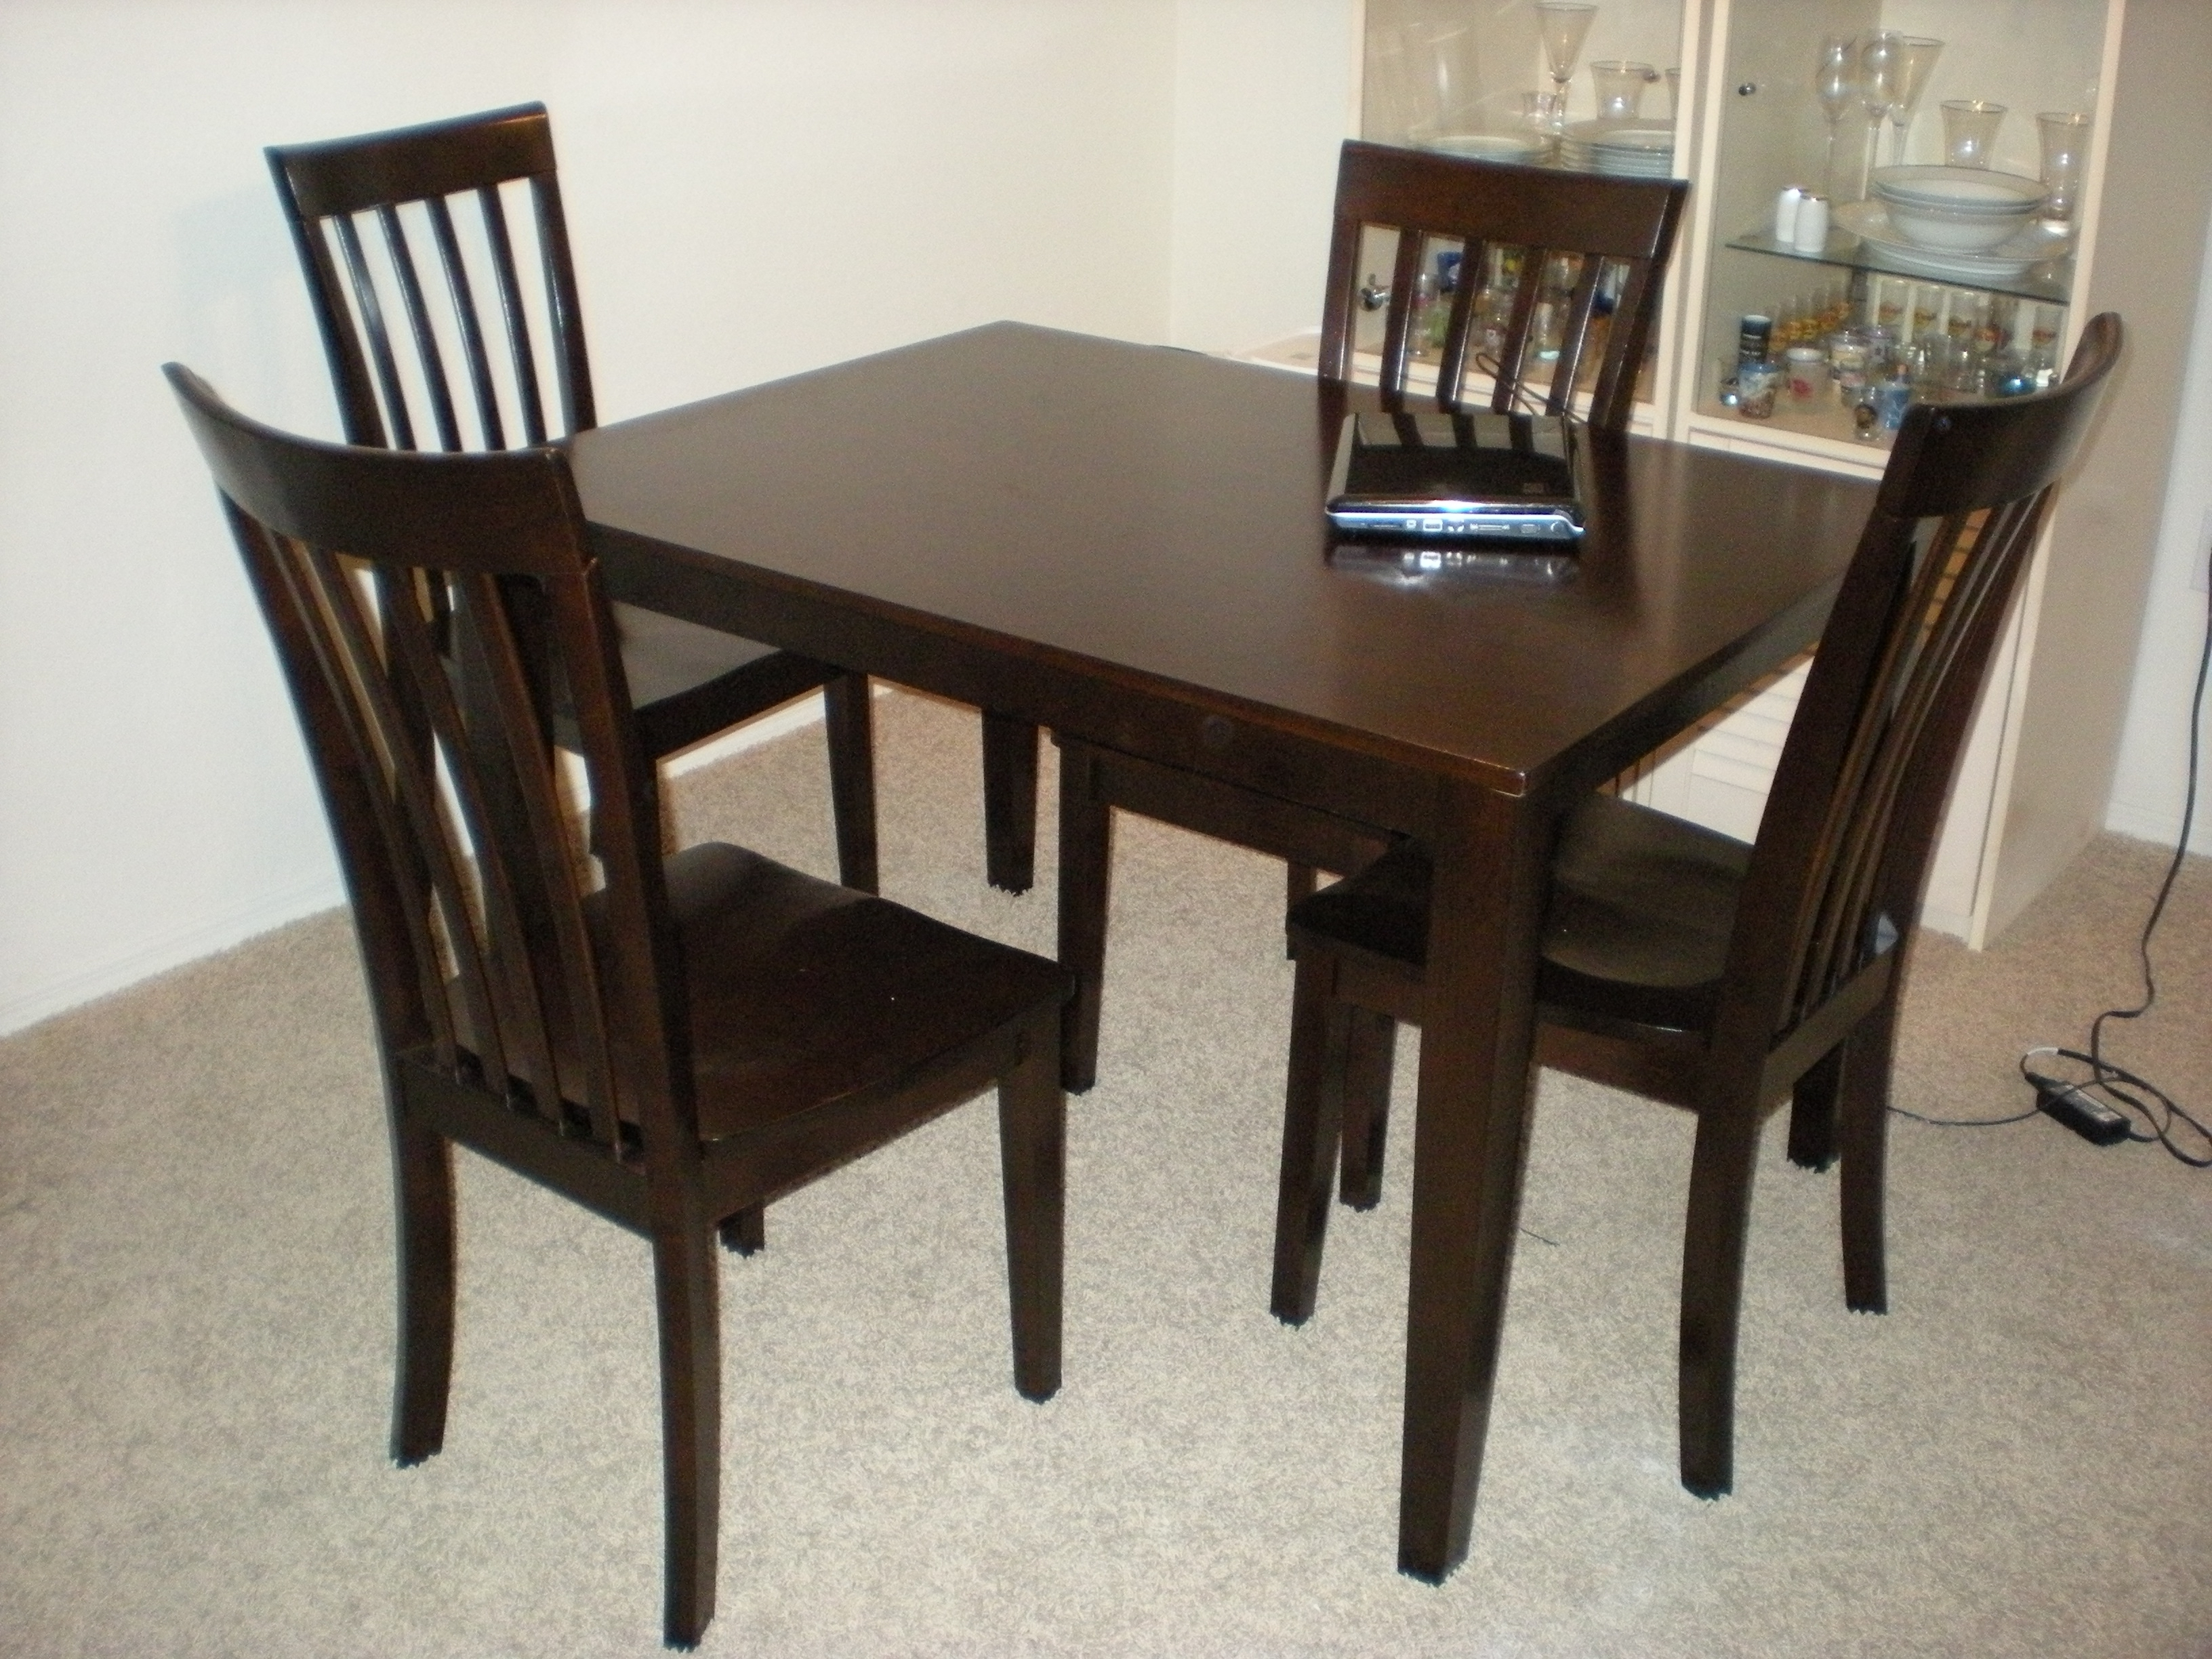 Most Recently Released Black Wood Dining Tables Sets Inside Chair Black Wood Dining Table And Chairs Ciov Inside Wooden Dining (View 17 of 25)